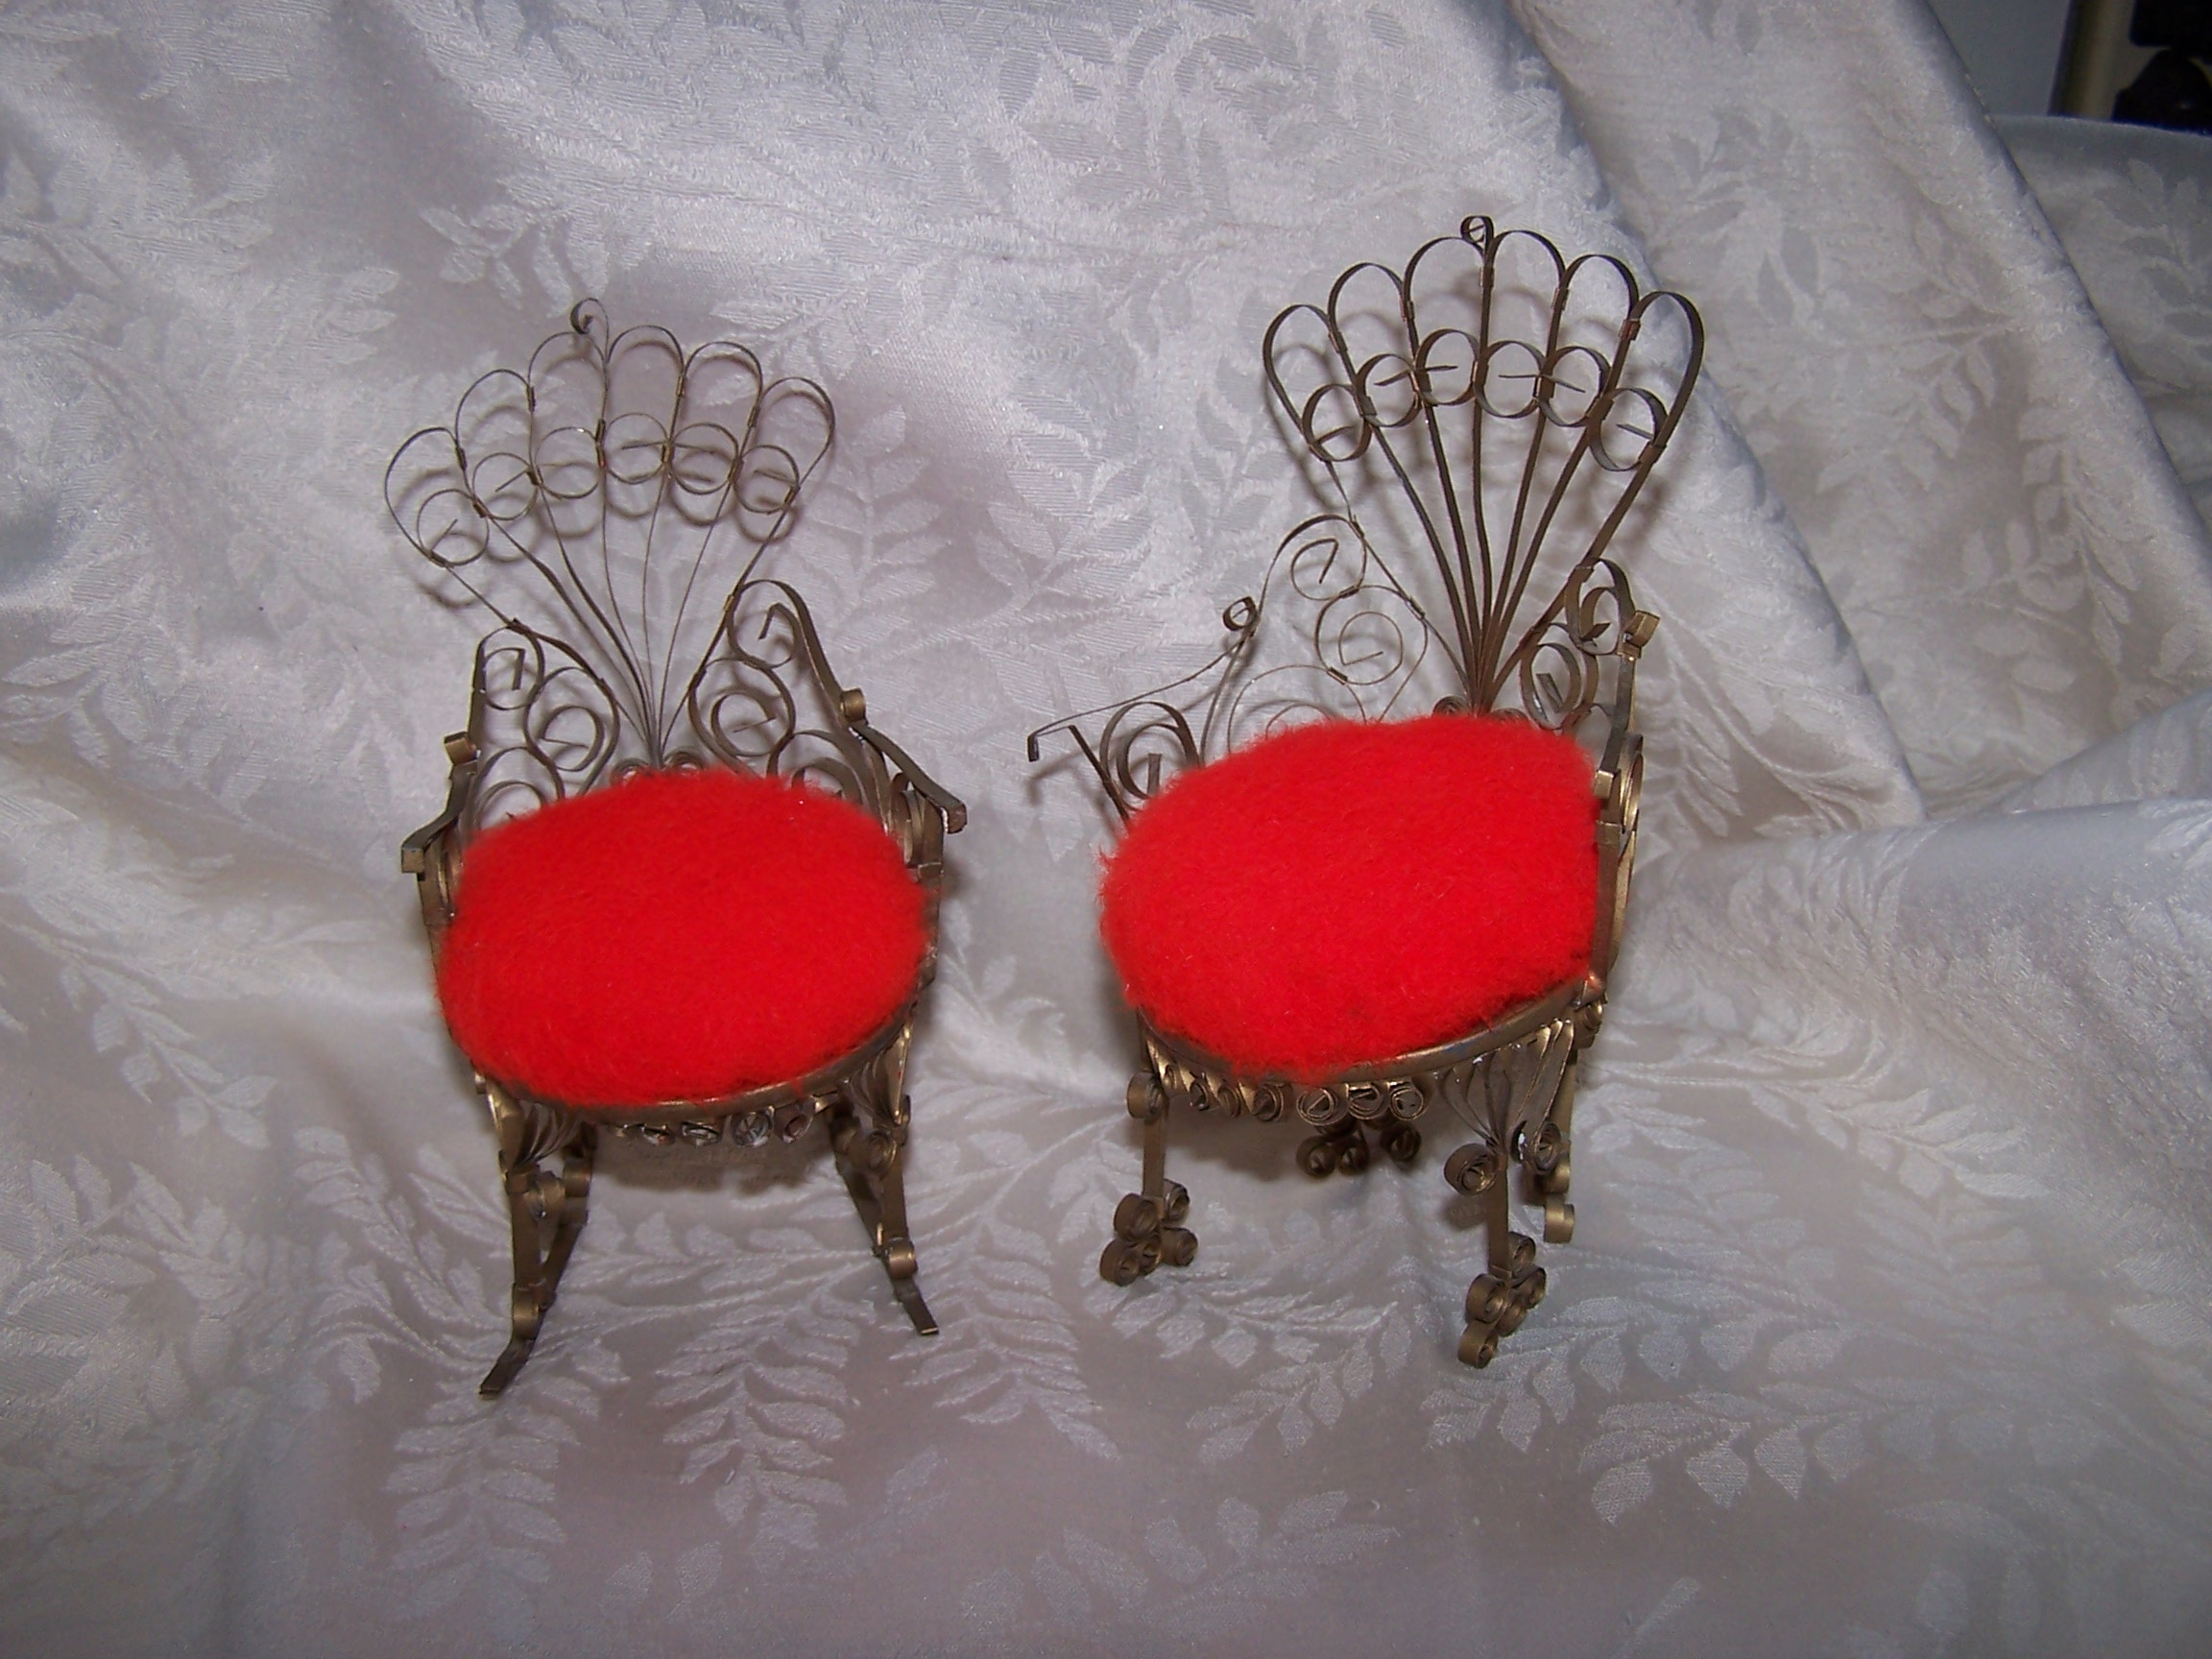 Quilled Pin Cushion Chair, Rocking Chair, Fuzzy Red, Gold